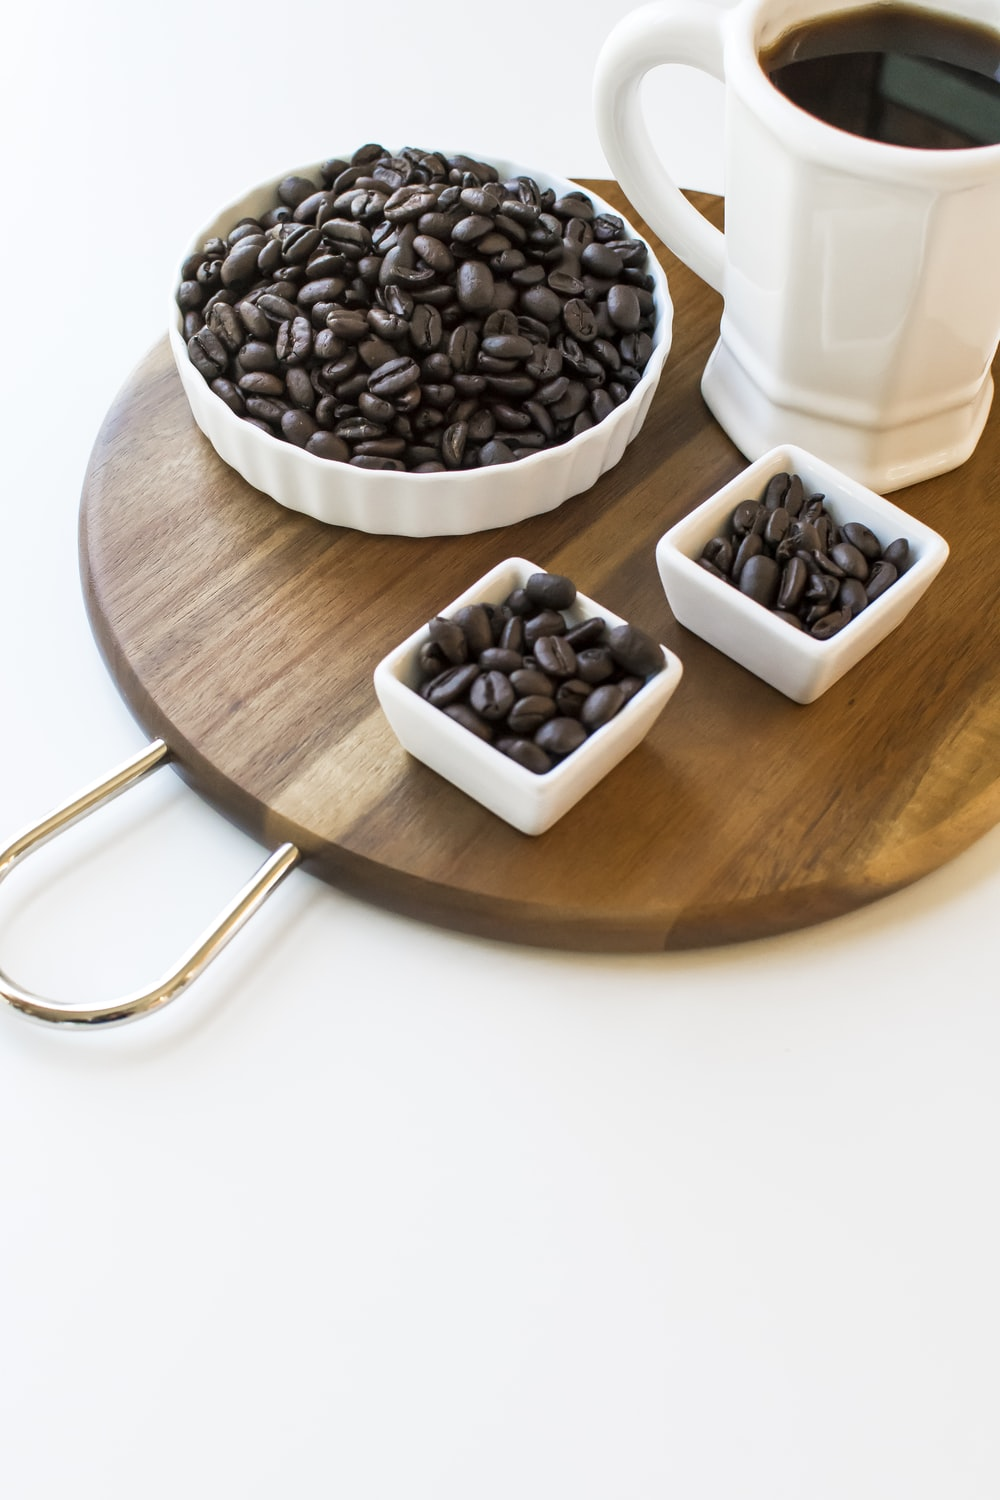 black and white ceramic mugs on brown wooden table